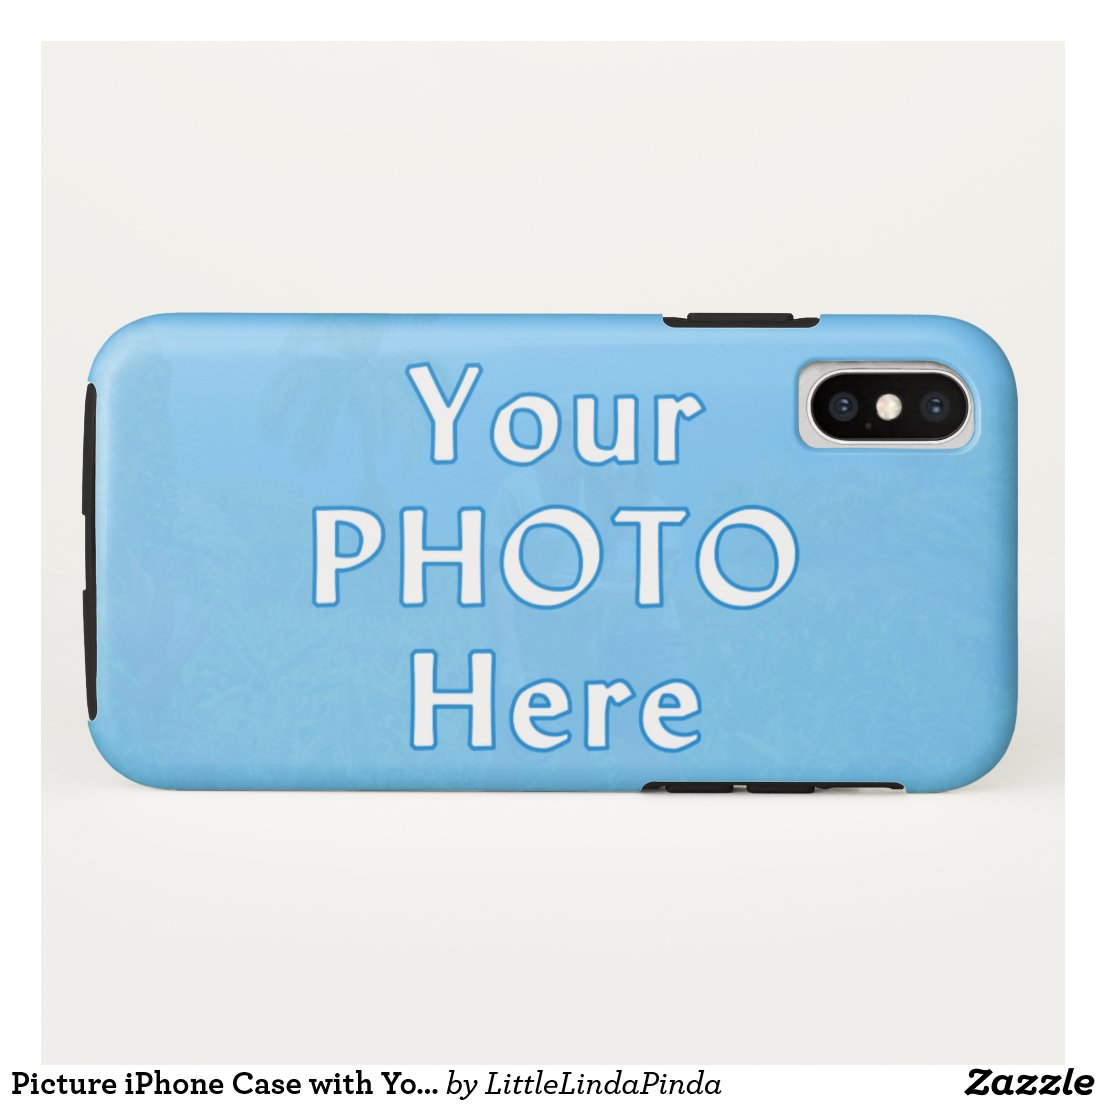 Picture iPhone Case with Your Favorite Photo